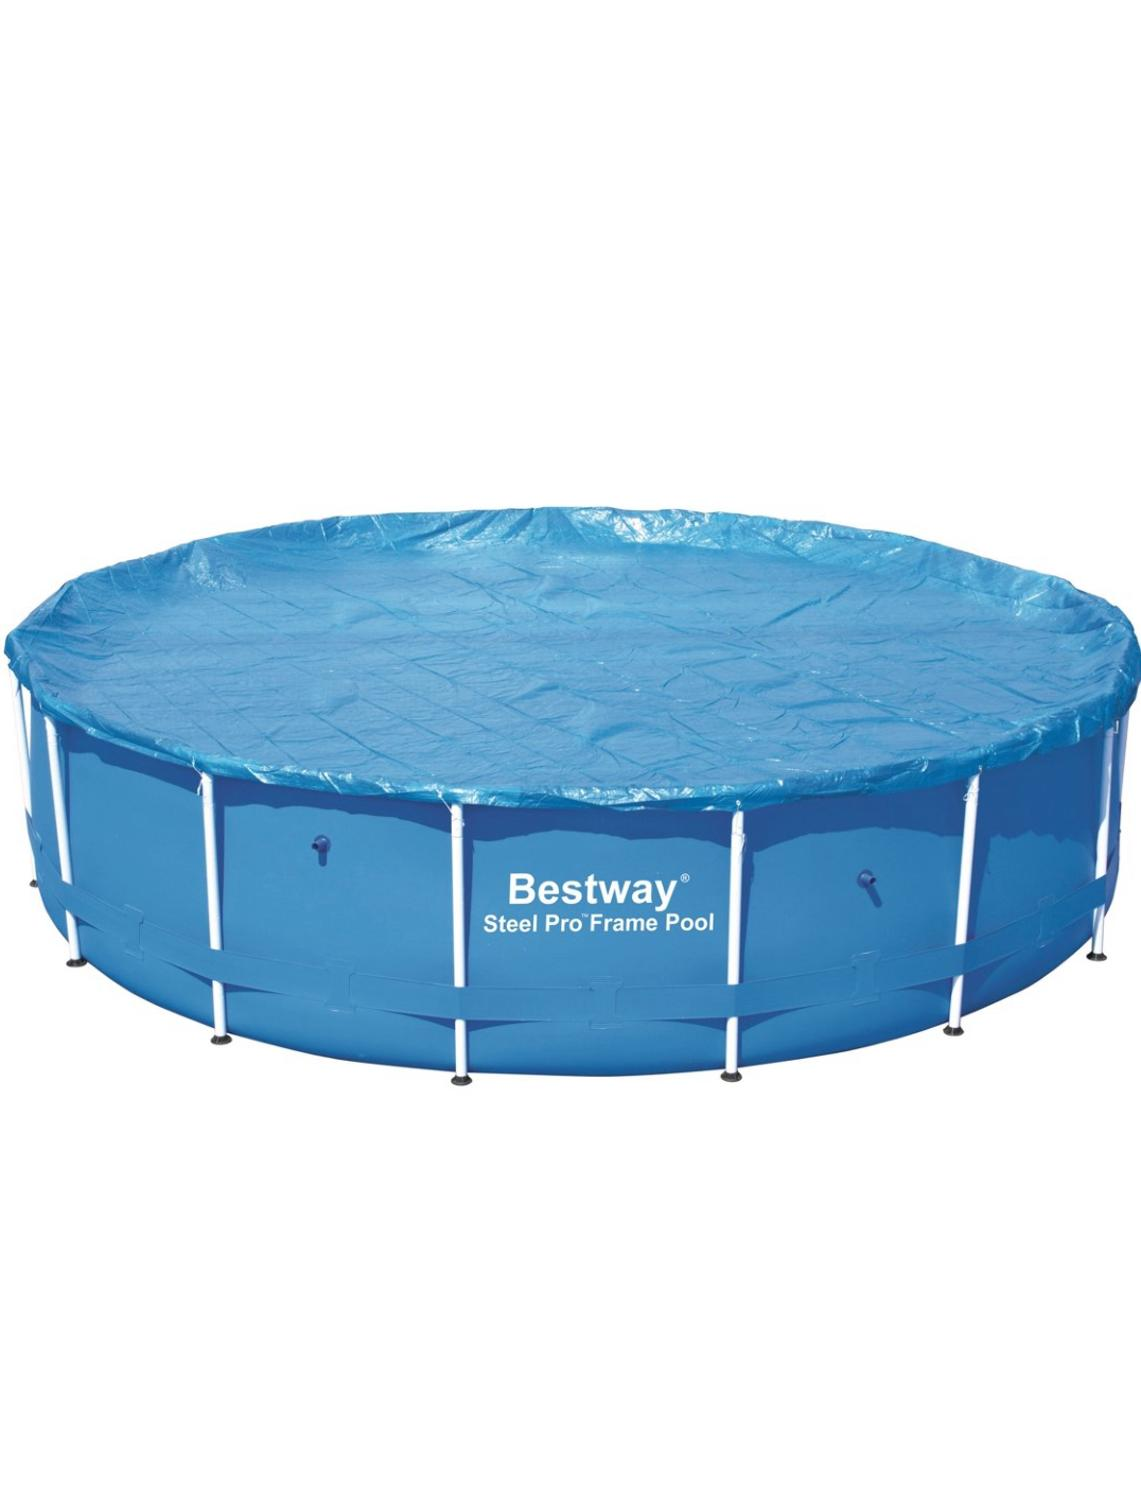 Awning For Frame Swimming Pool 457 х122 Cm, Bestway, Item No. 58134